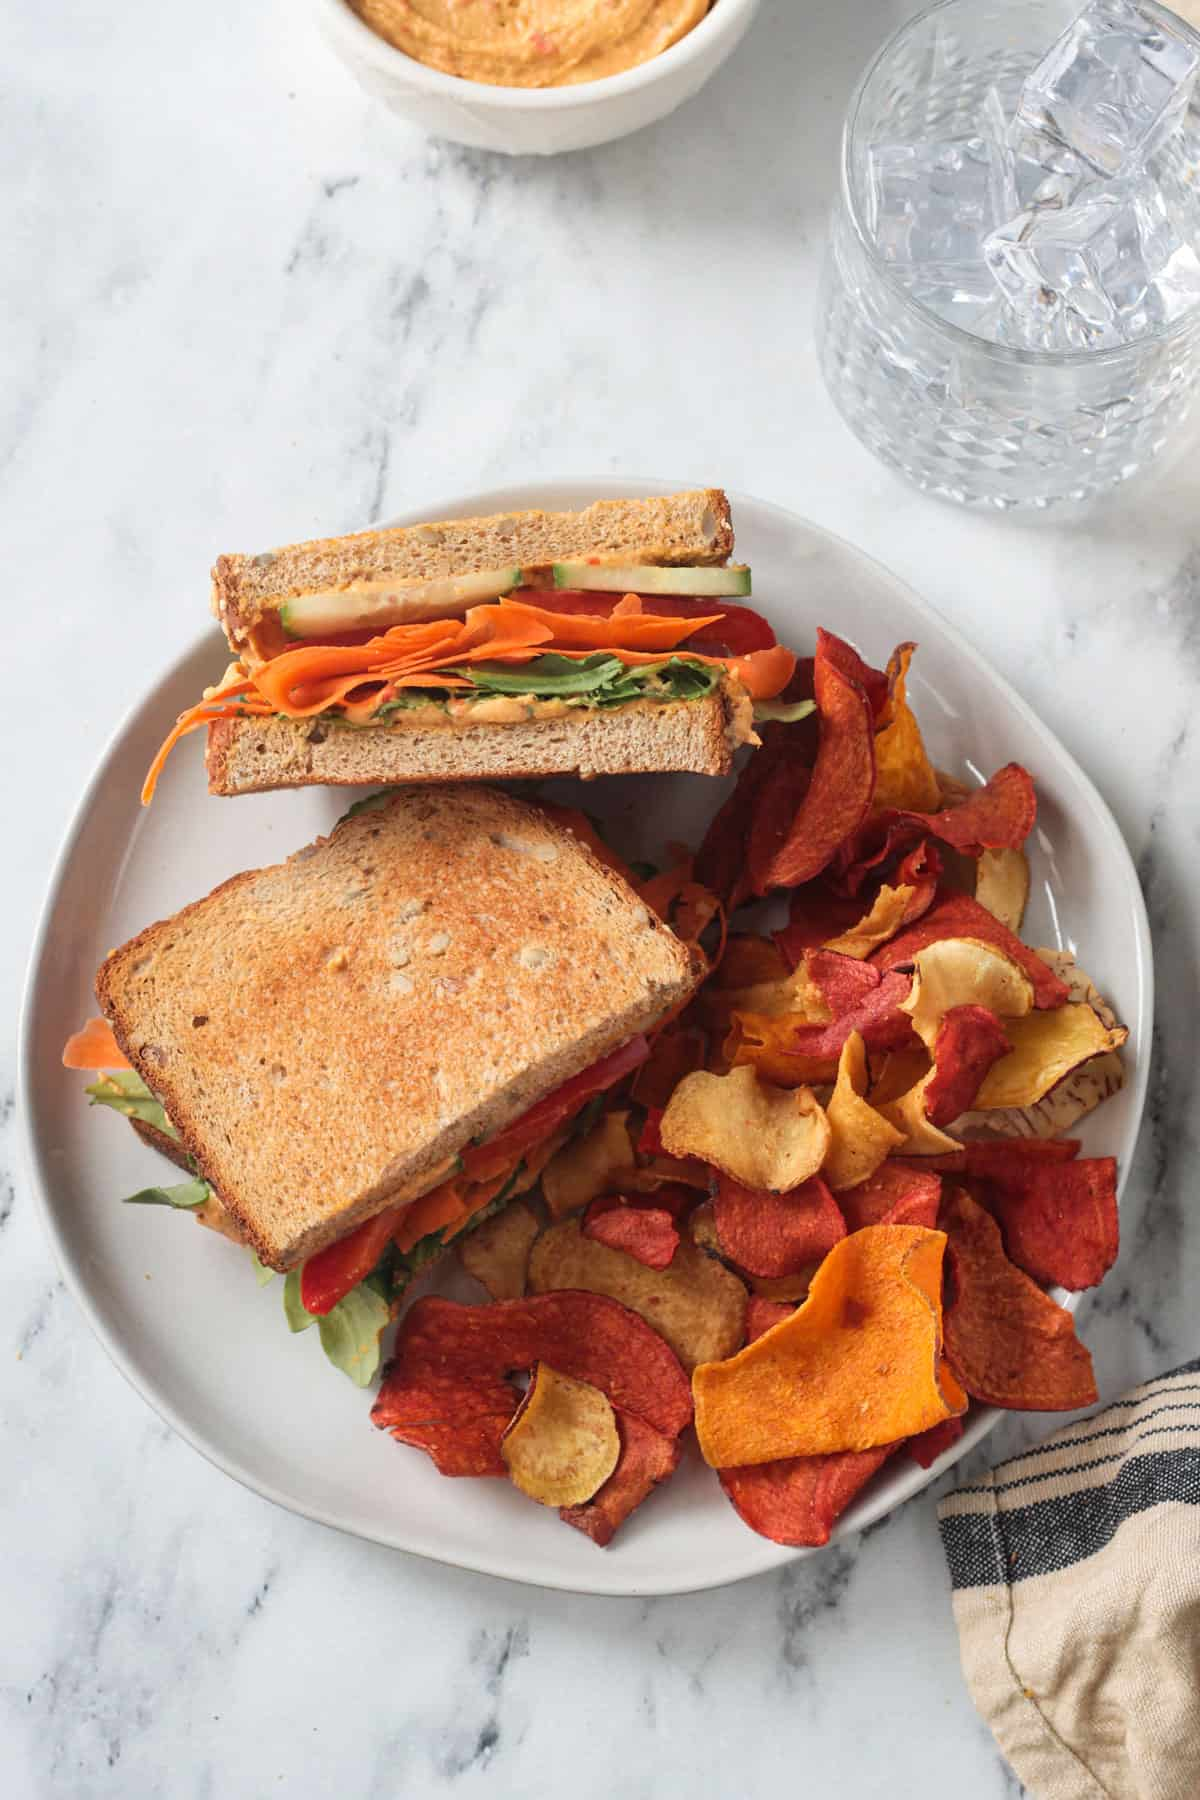 Veggie Hummus Sandwich cut in half on a plate with chips.